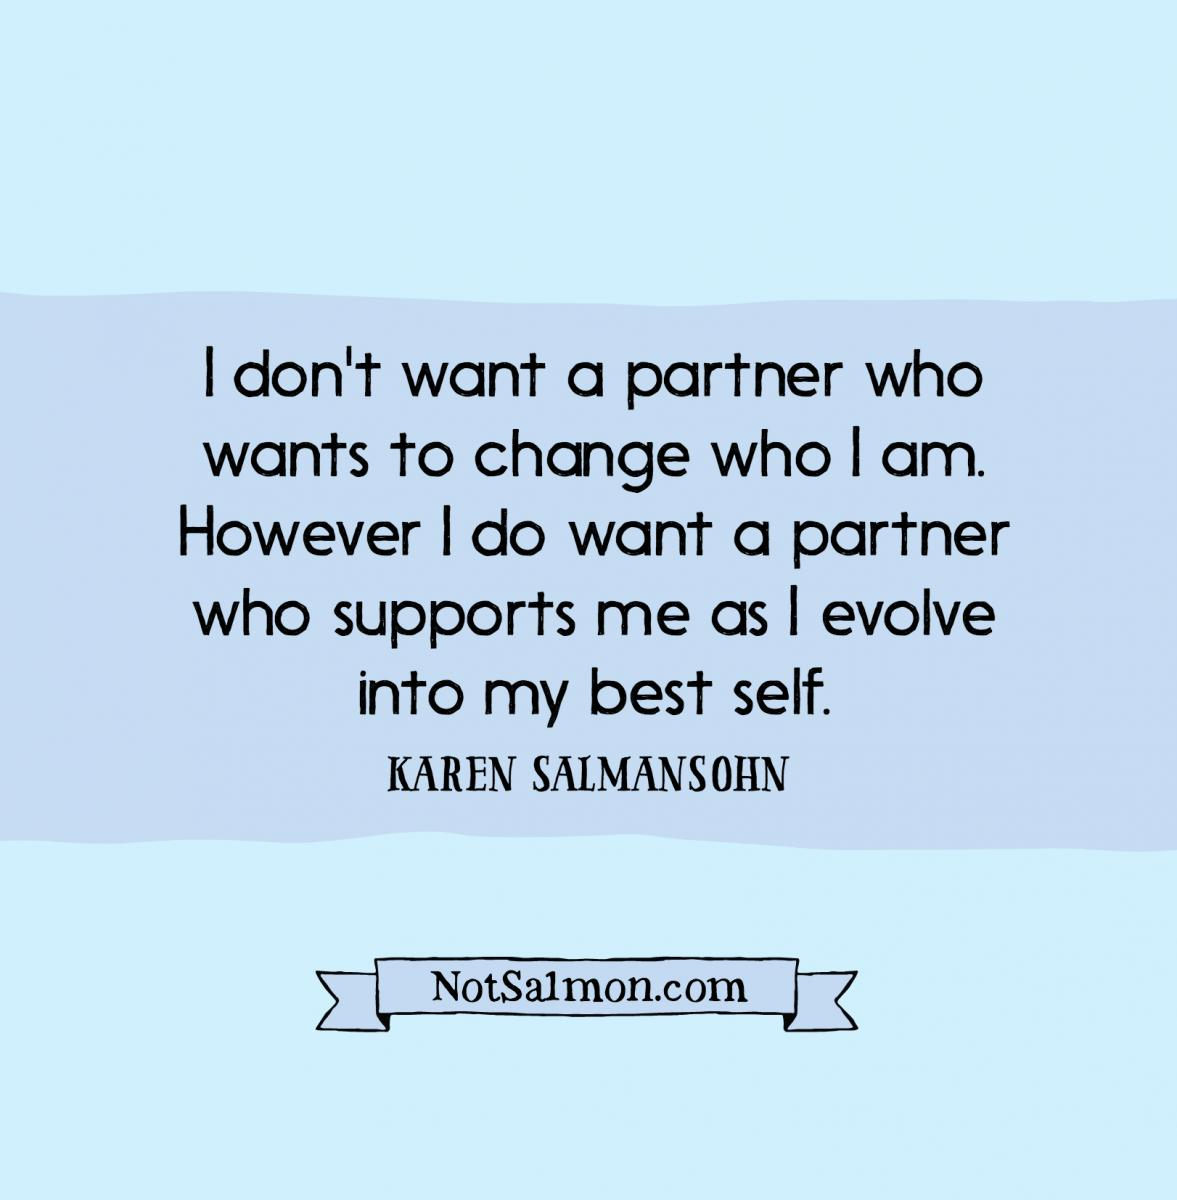 quote dating advice partner who support evolution